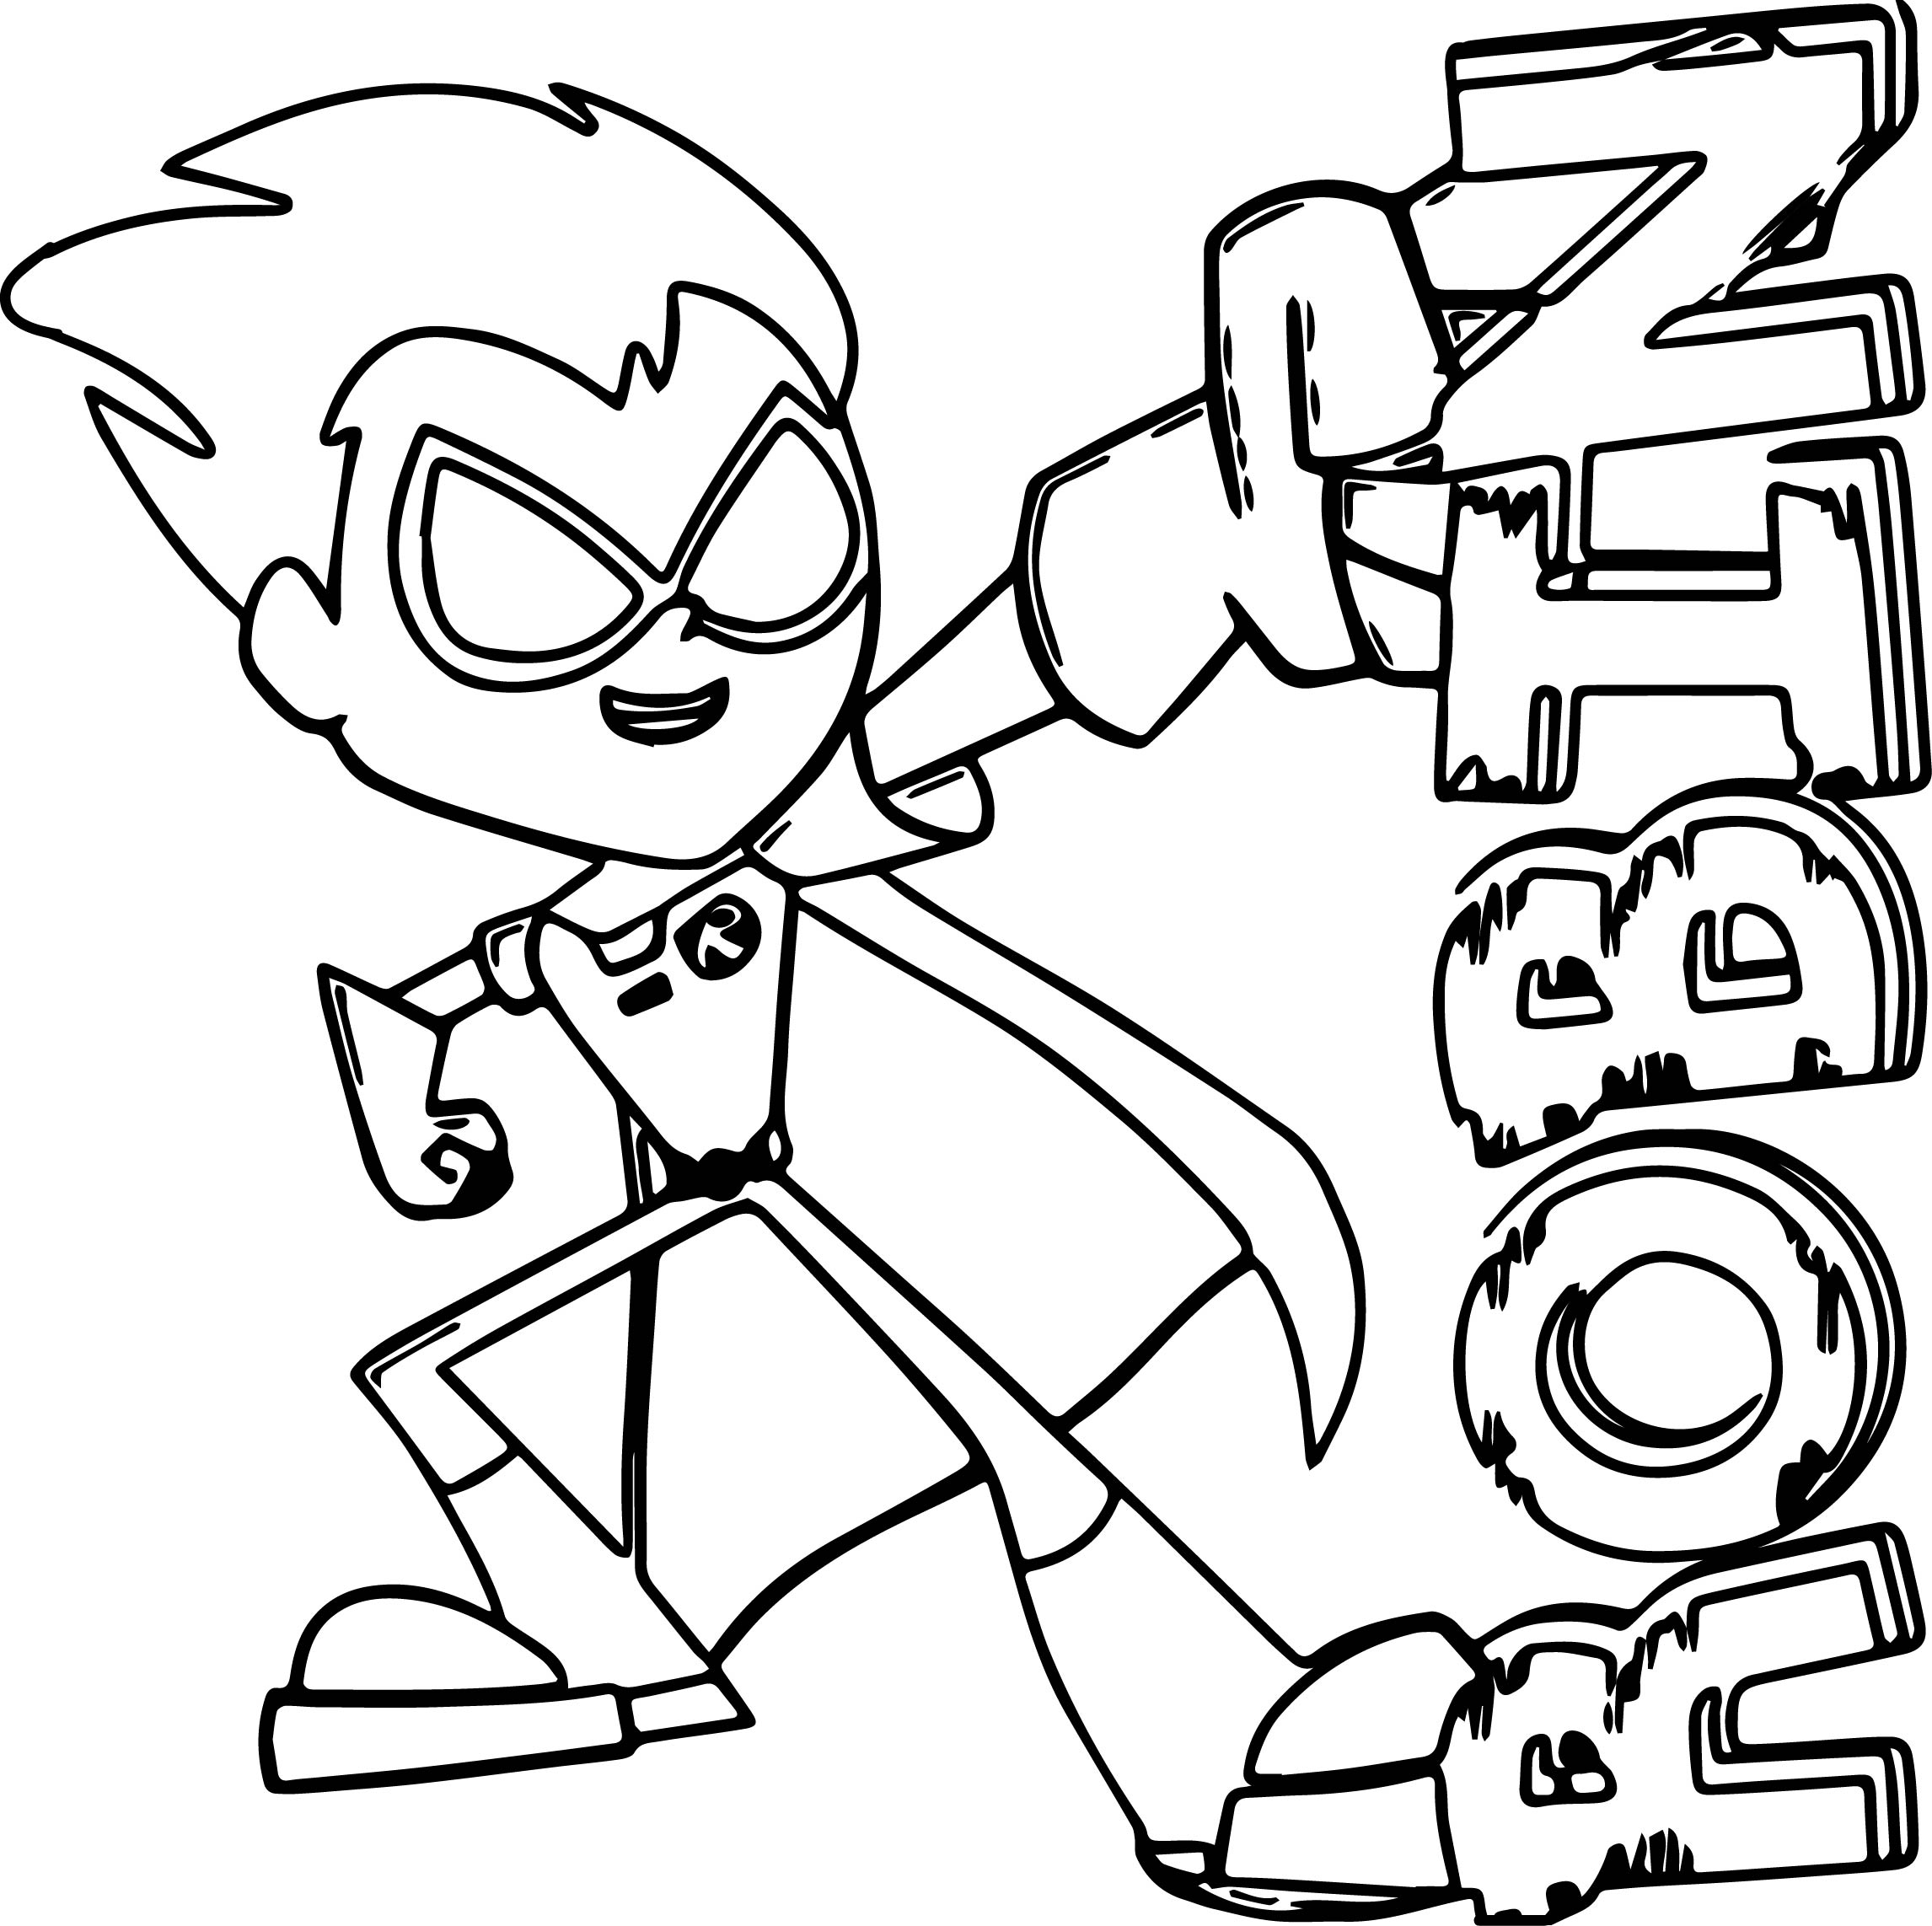 titans coloring pages teen titans coloring pages best coloring pages for kids pages coloring titans